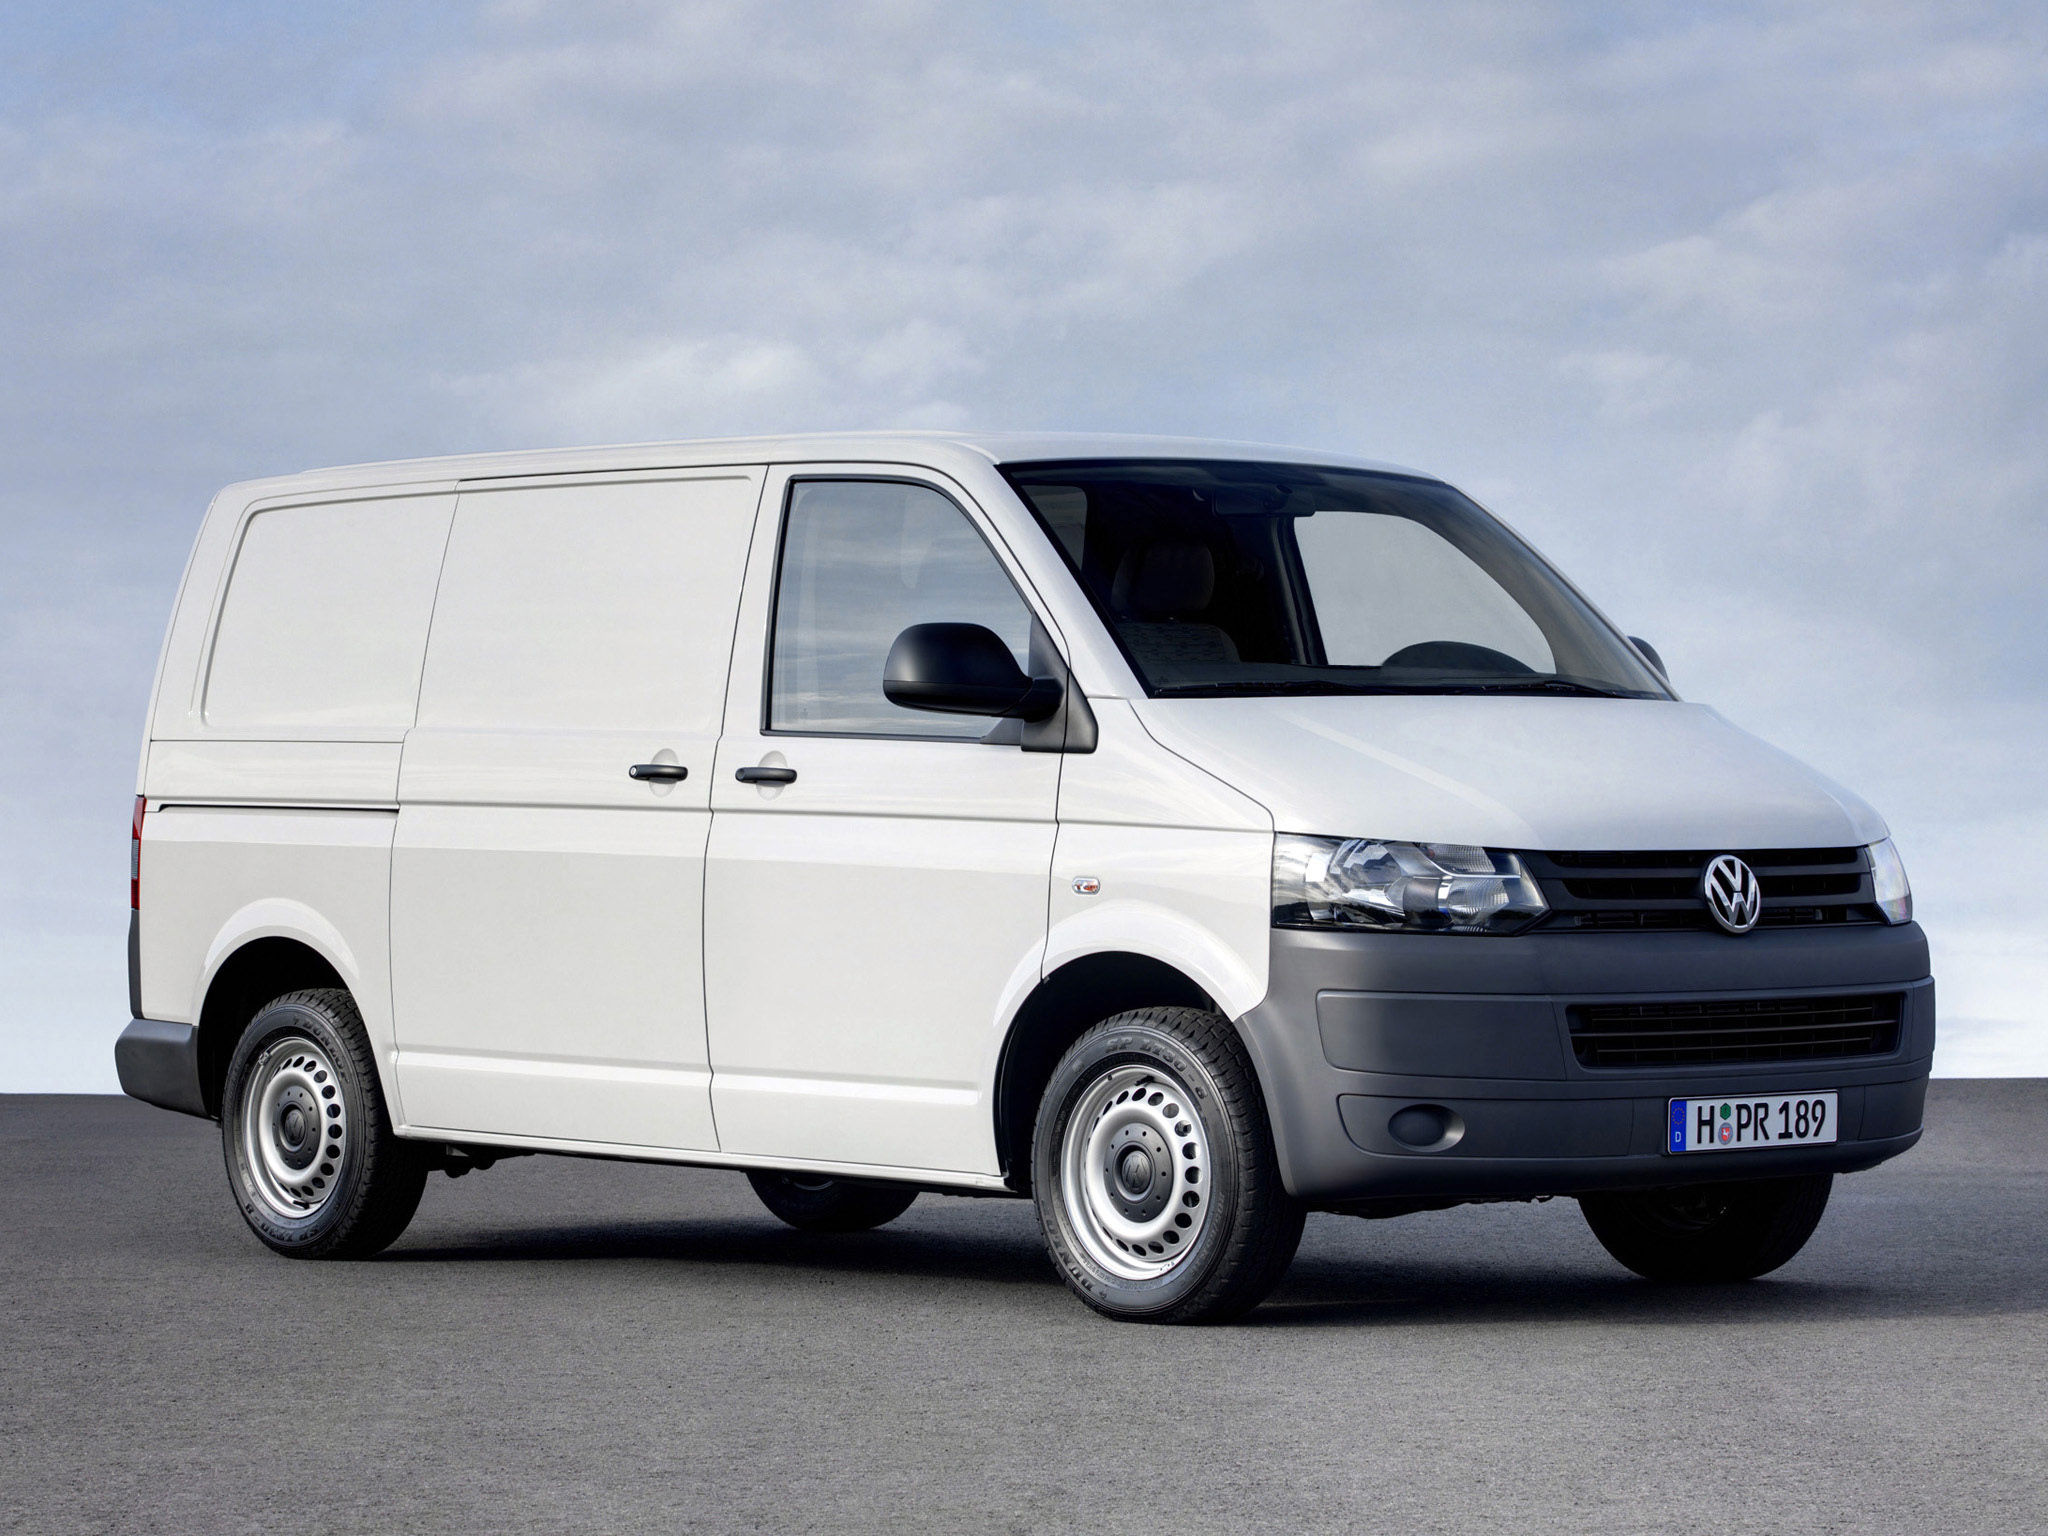 volkswagen transporter car technical data car. Black Bedroom Furniture Sets. Home Design Ideas